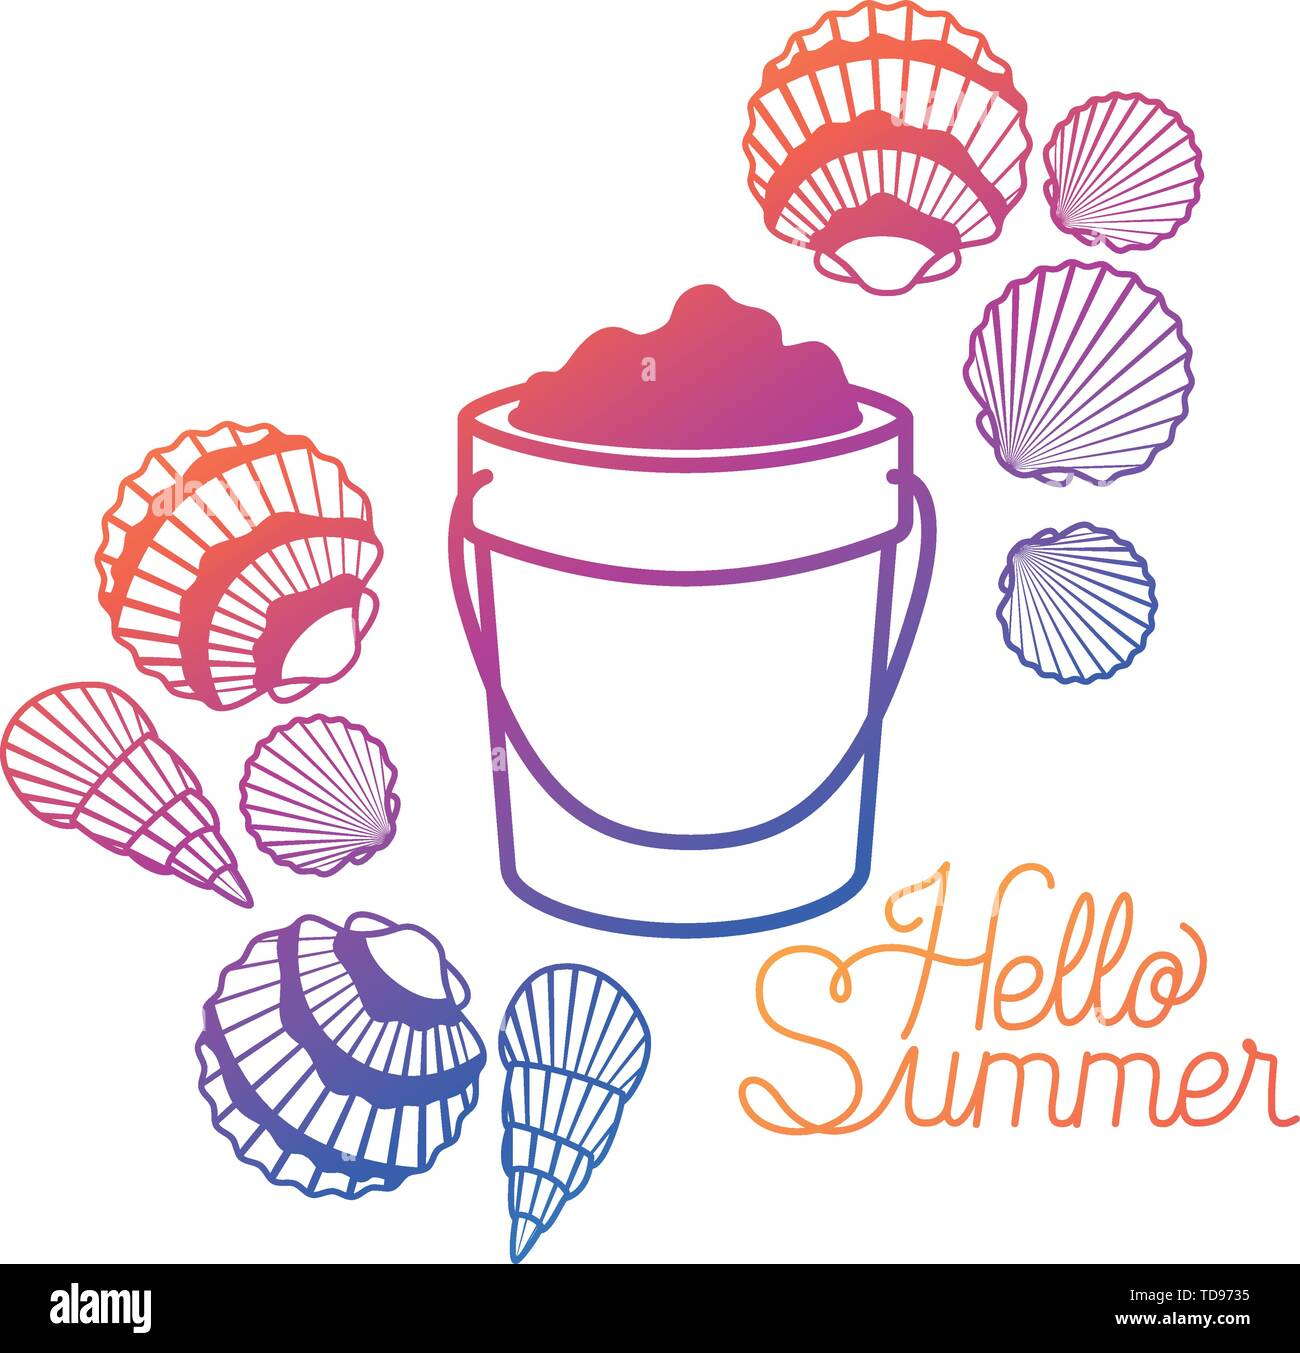 hello summer label with colorful image - Stock Image